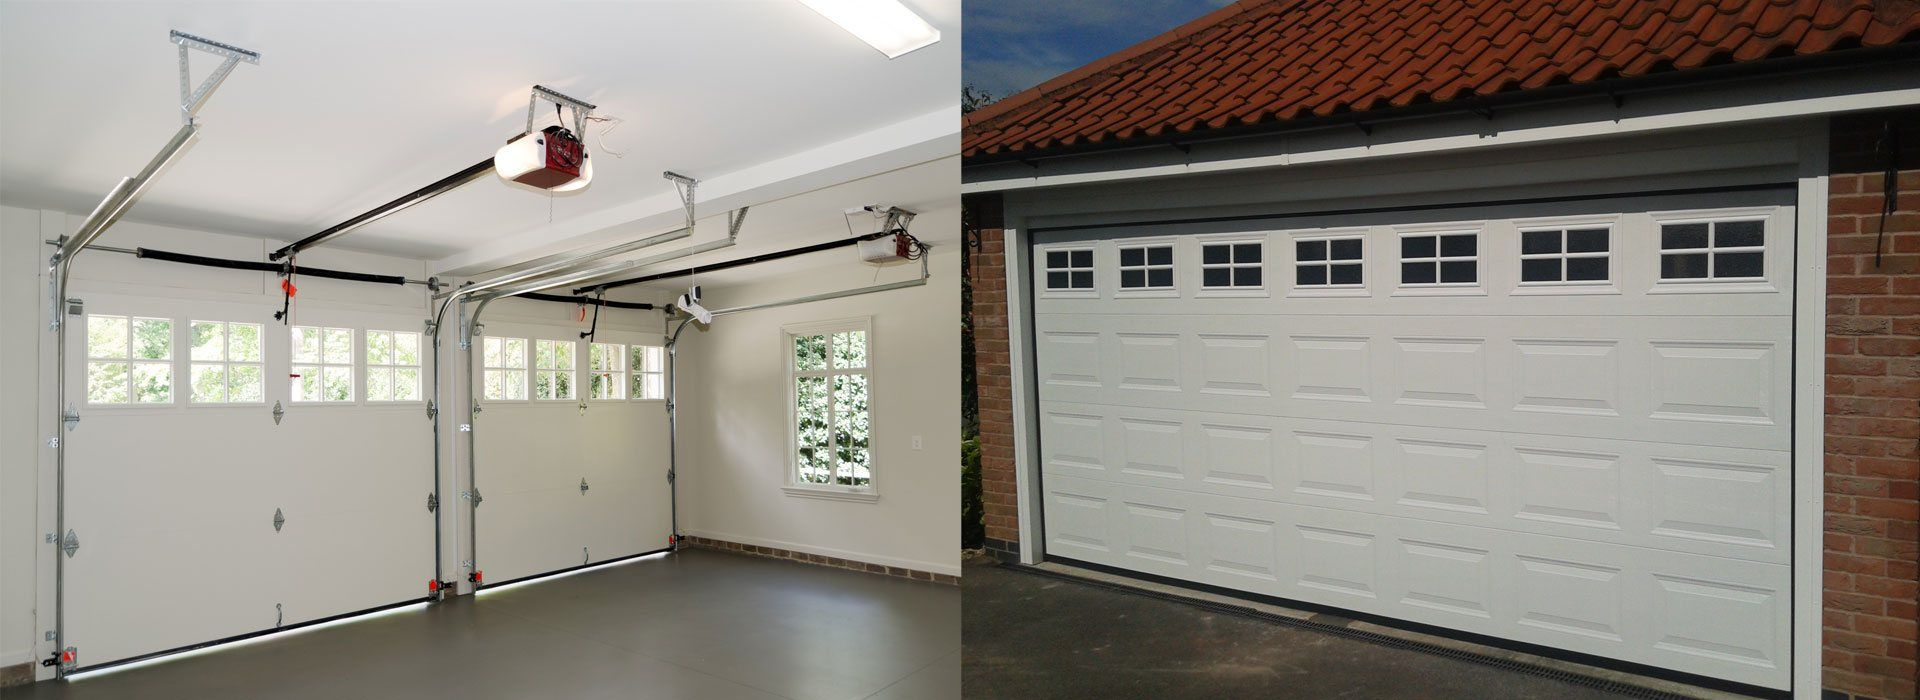 An Automatic Garage Door In Your House Adds A Unique Charm And